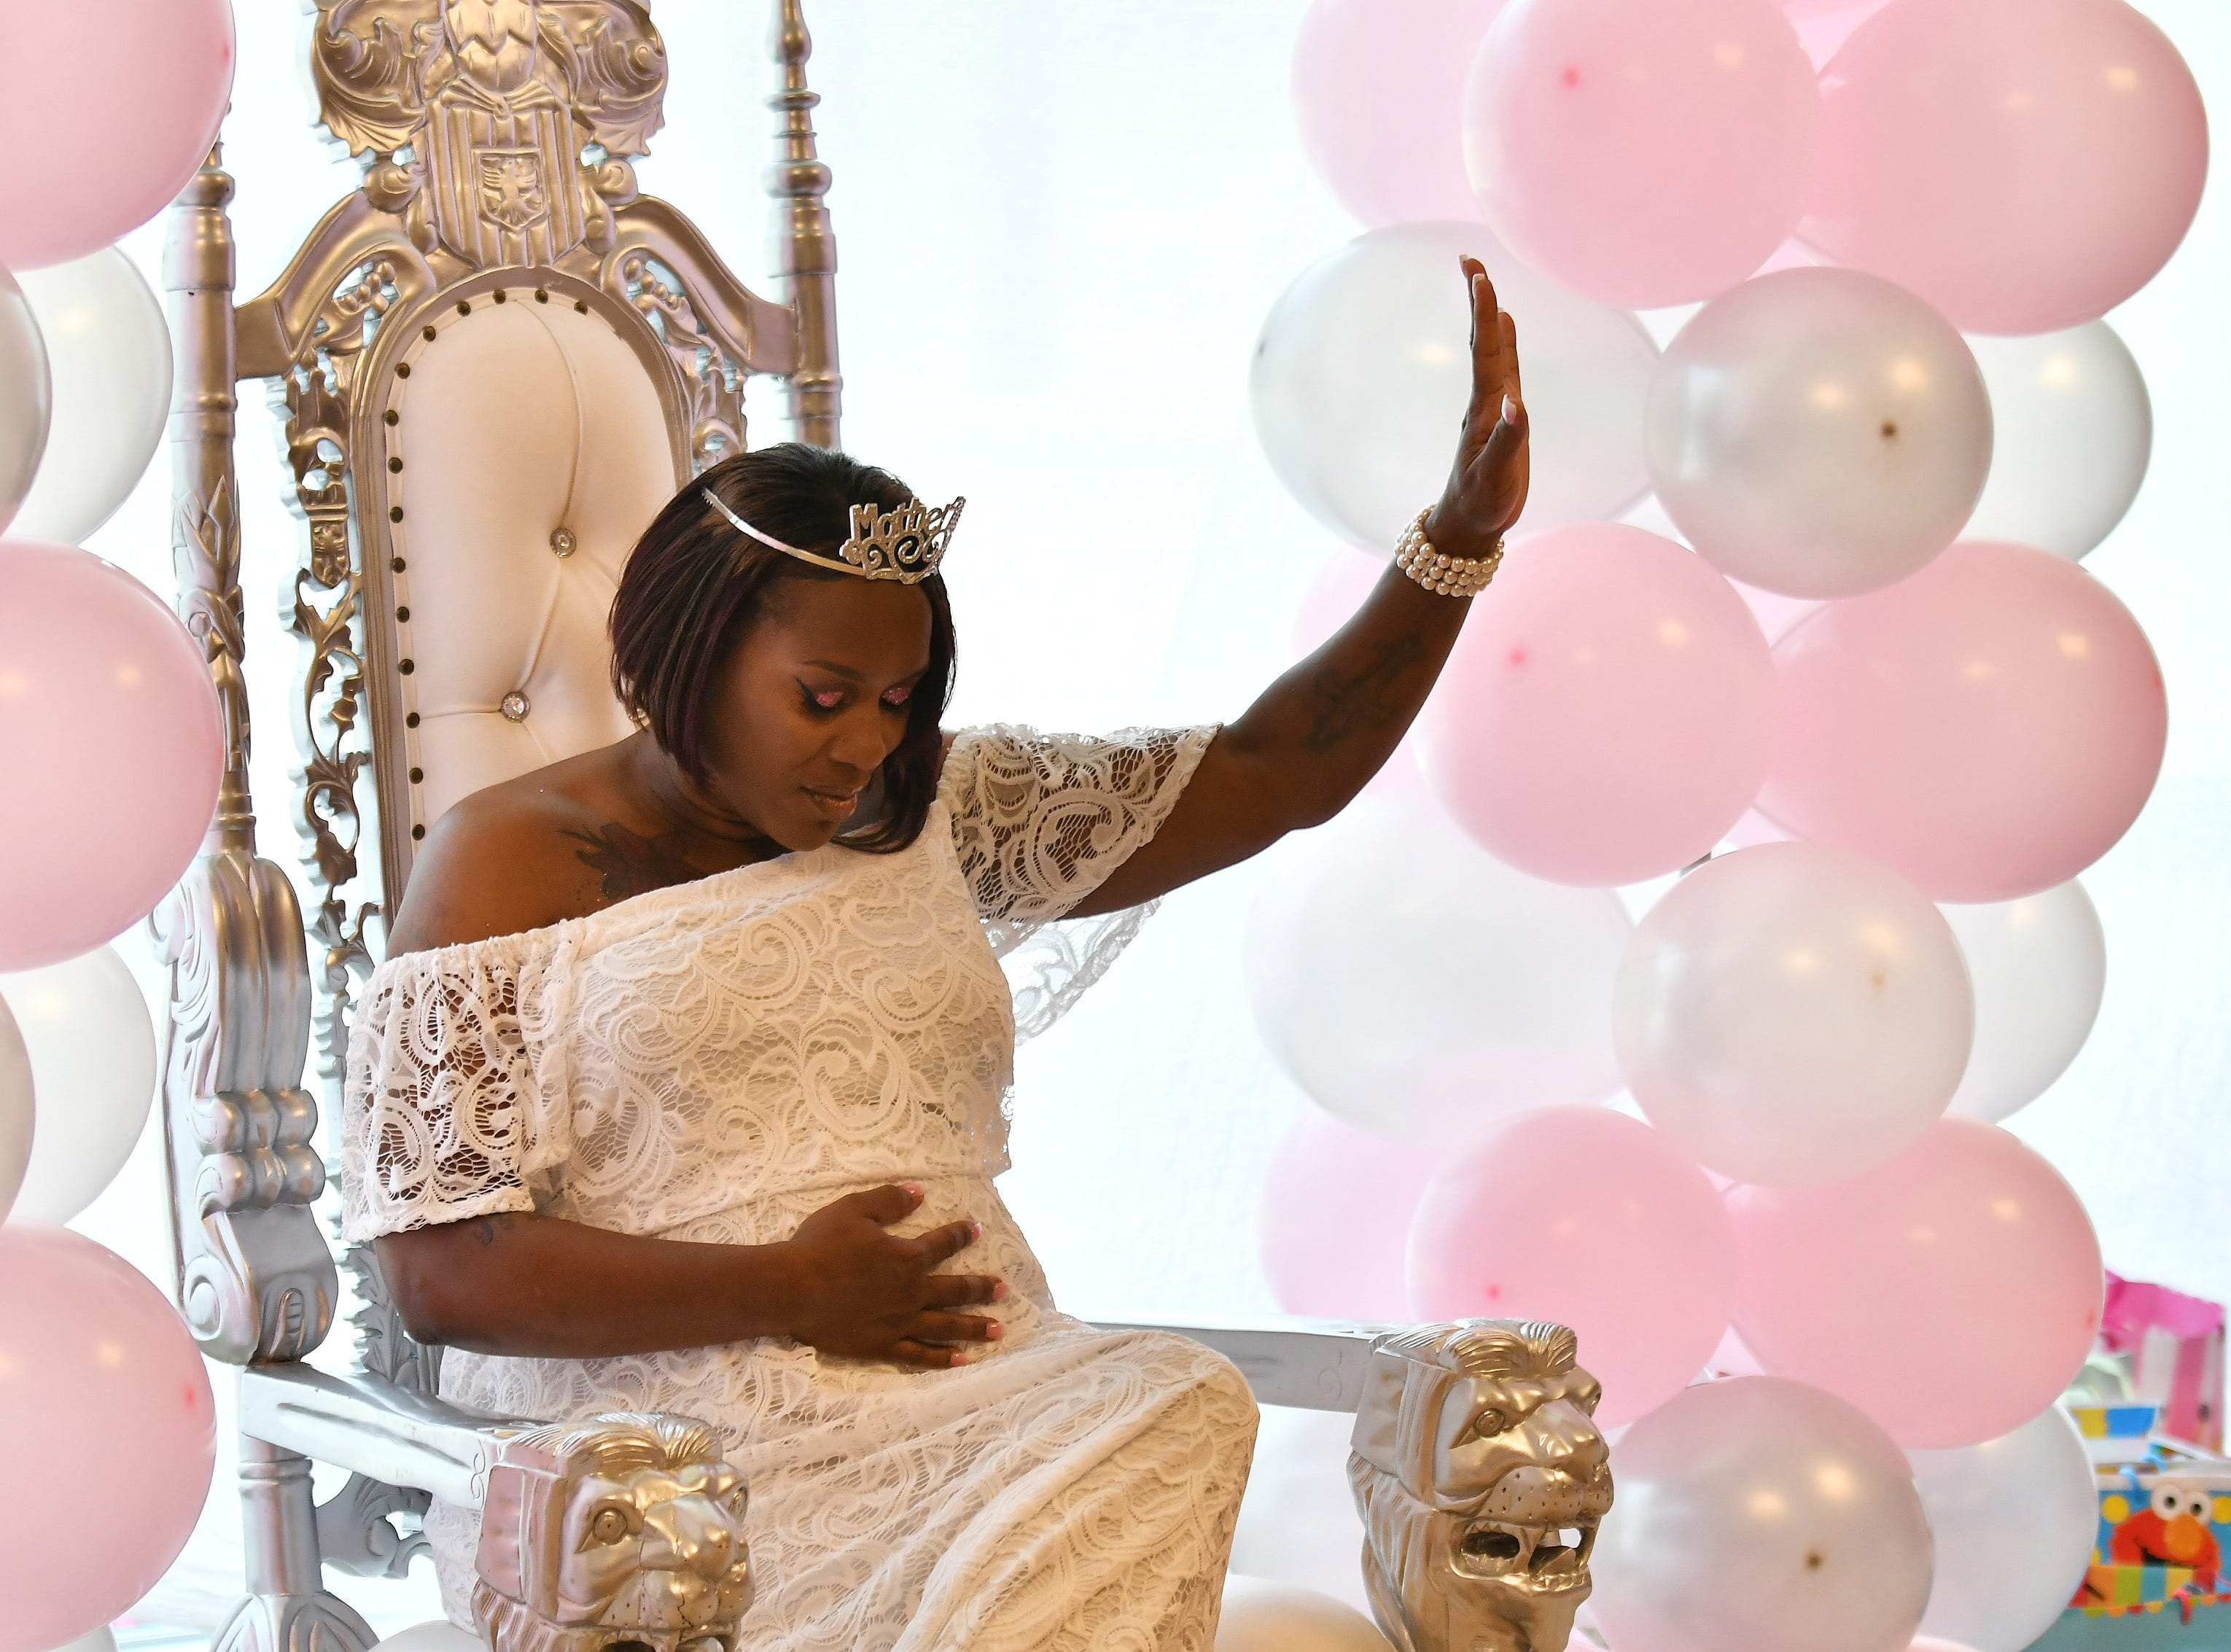 Kim Simmons raises her hand and feels her belly while a prayer is said at a community baby shower for her at Horatio Williams Foundation in Detroit on July 15, 2018. Simmons is one of two female juvenile lifers who was released from prison last year. While in prison she dreamed of having a baby and being able to raise it. Now her dream is coming true.